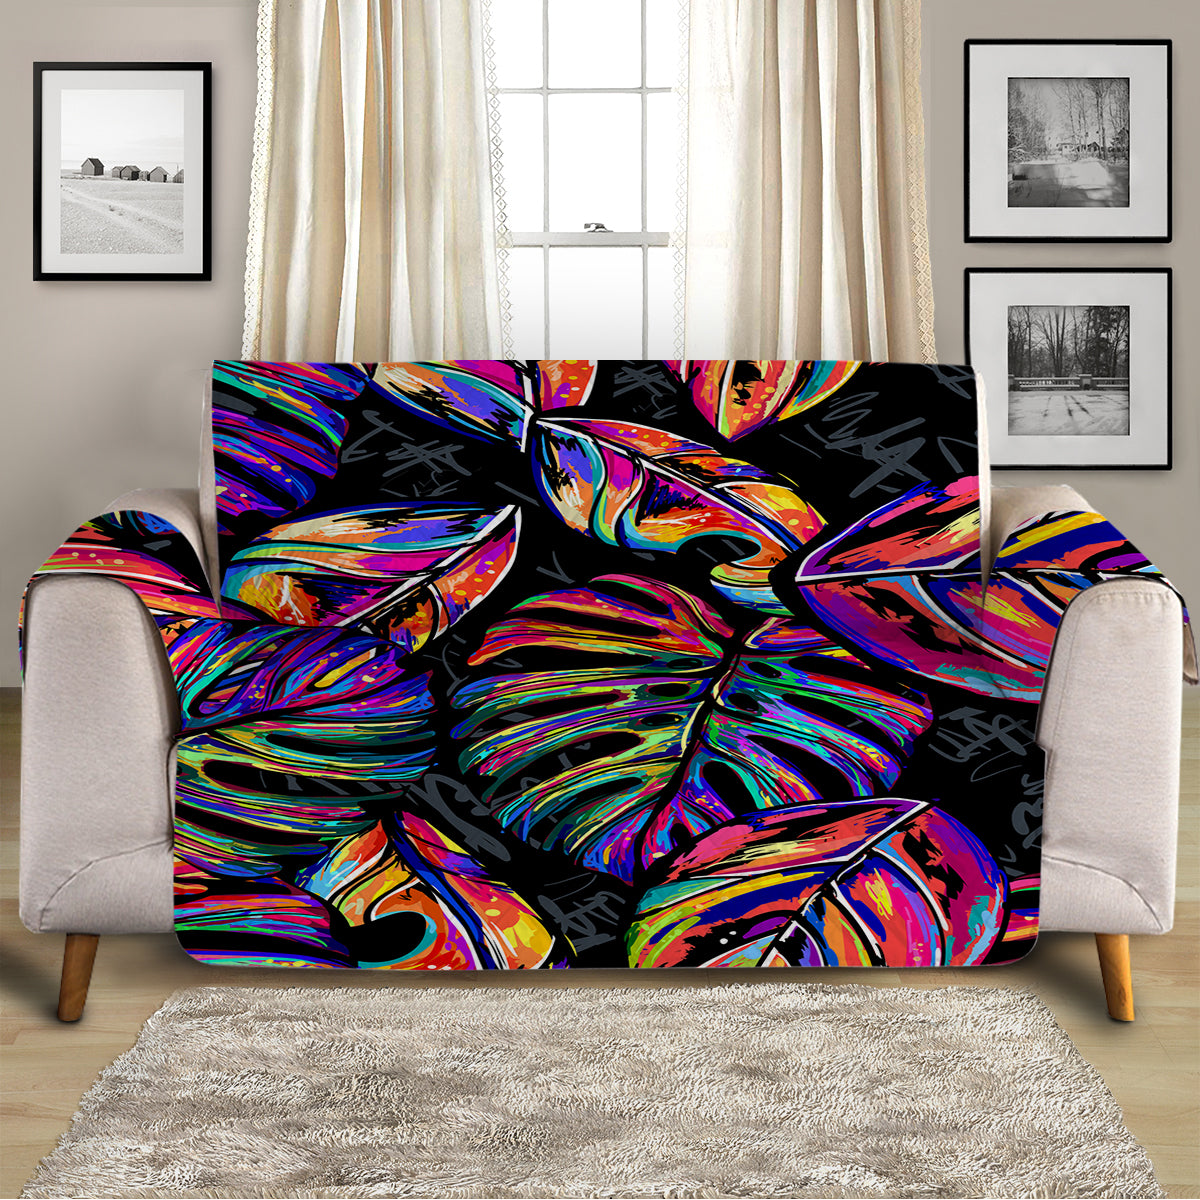 Electropical Sofa Cover